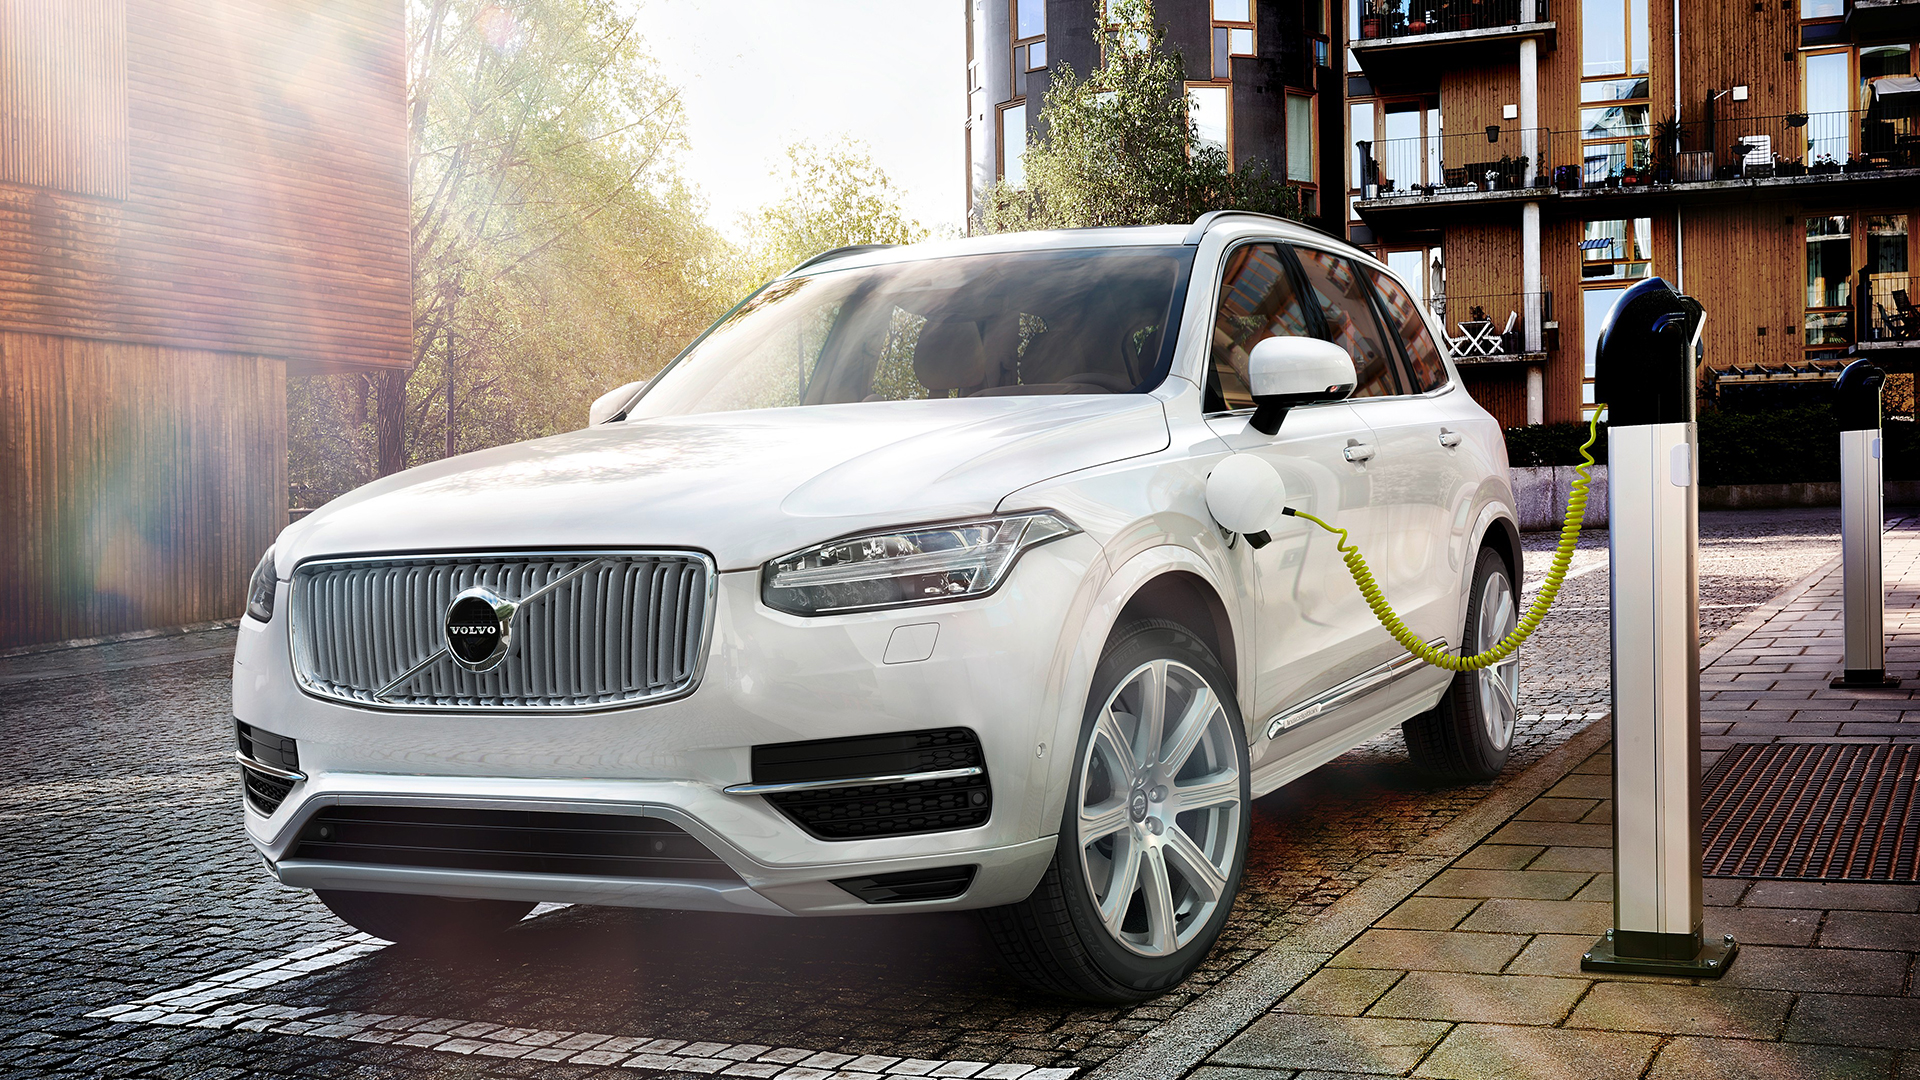 Volvo XC90 2016 T8 Excellence Exterior